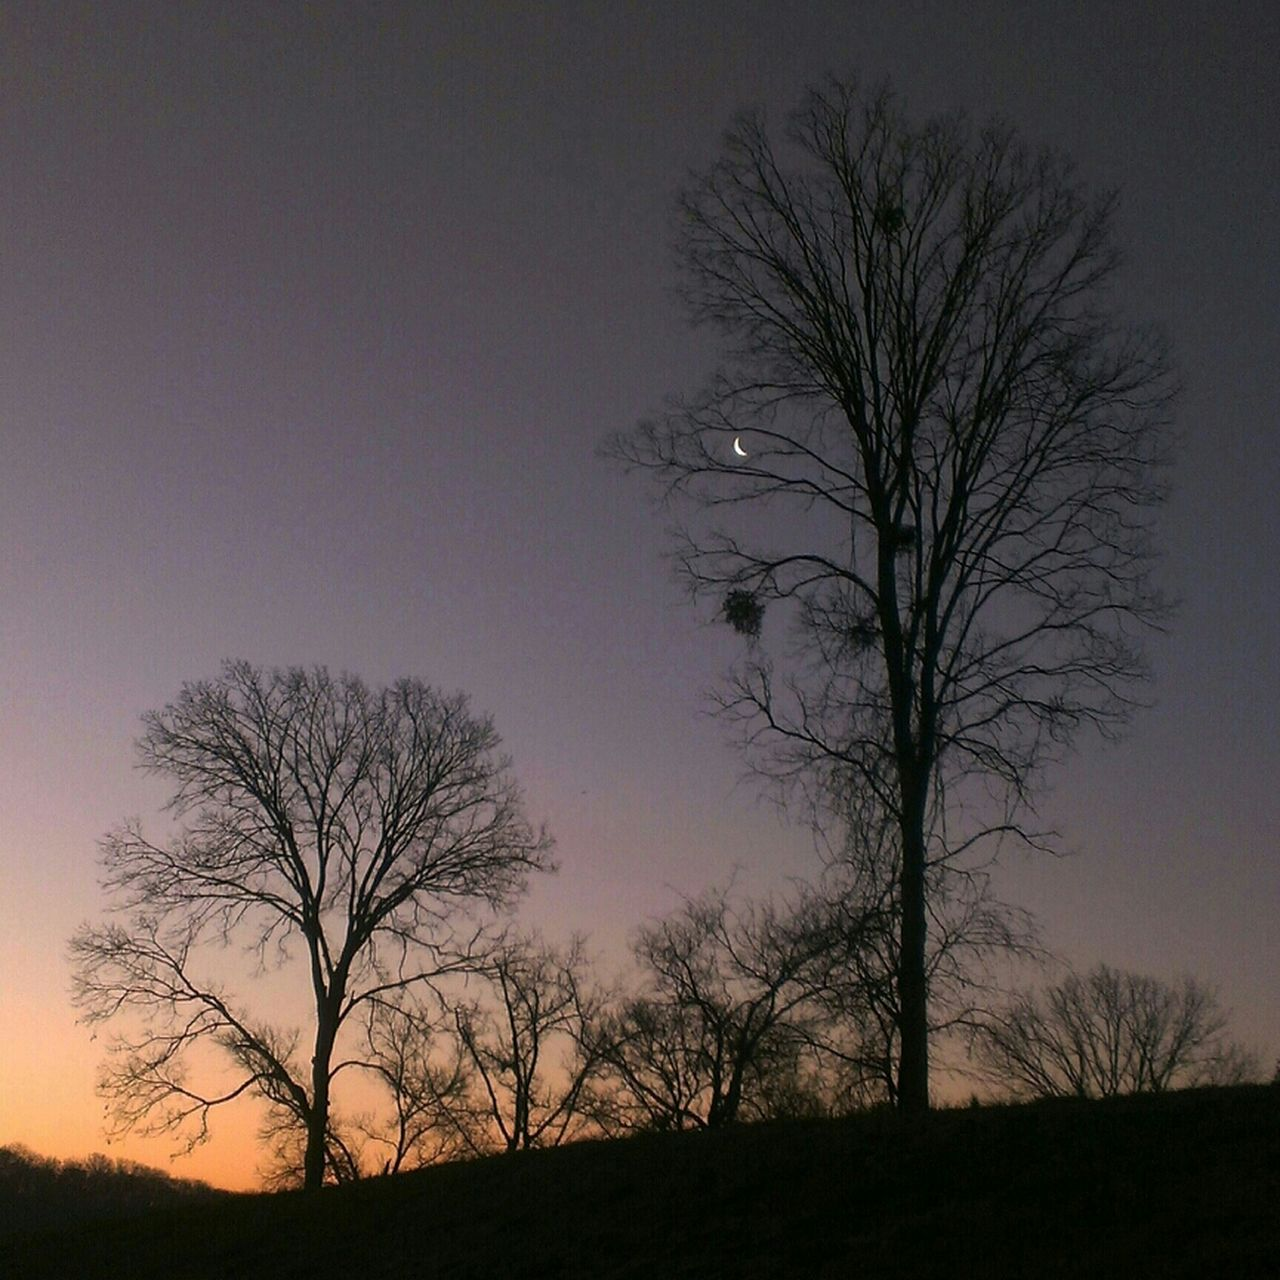 tree, bare tree, silhouette, branch, nature, beauty in nature, scenics, landscape, tranquility, tree trunk, tranquil scene, lone, sunset, sky, outdoors, no people, moon, night